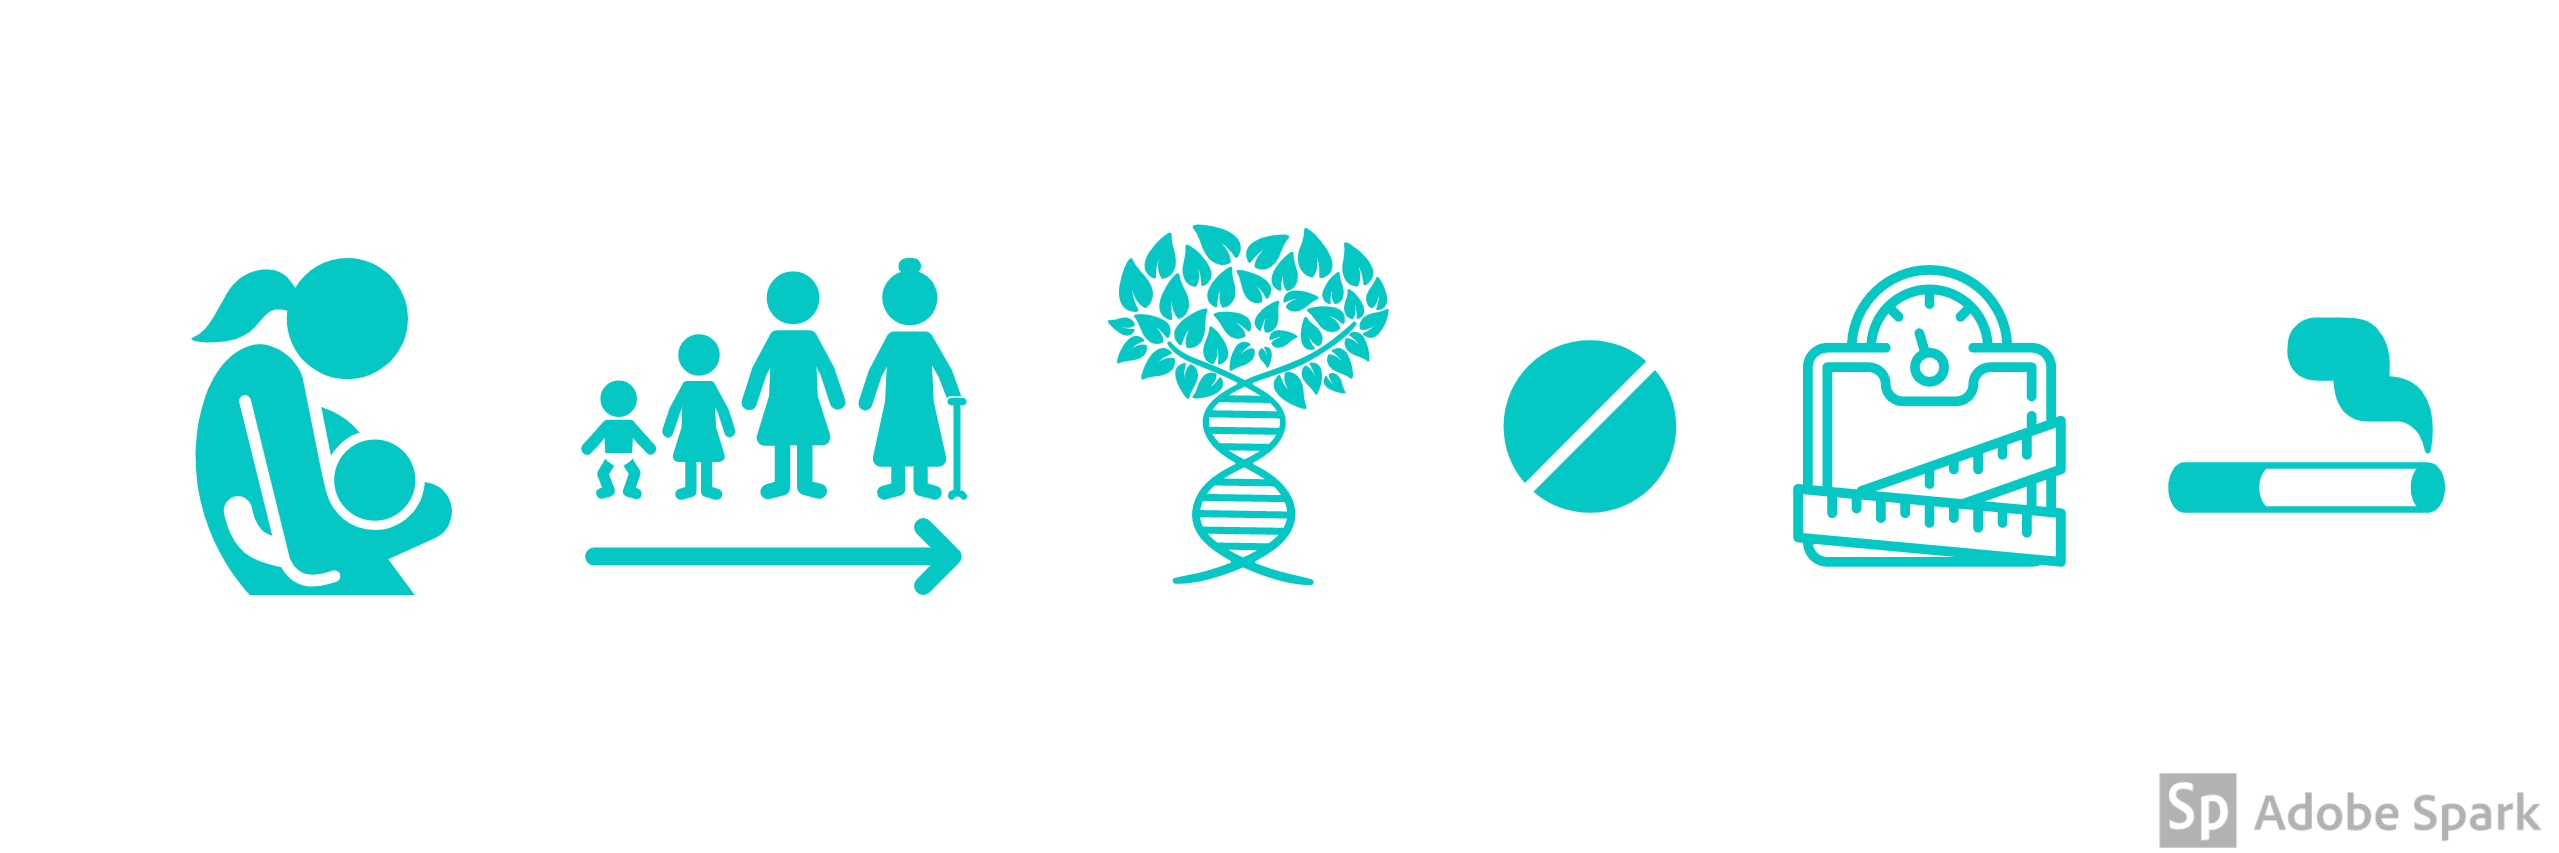 What Factors Affect Your Risk Of Developing Ovarian Cancer Cancer Loyalty Card Study